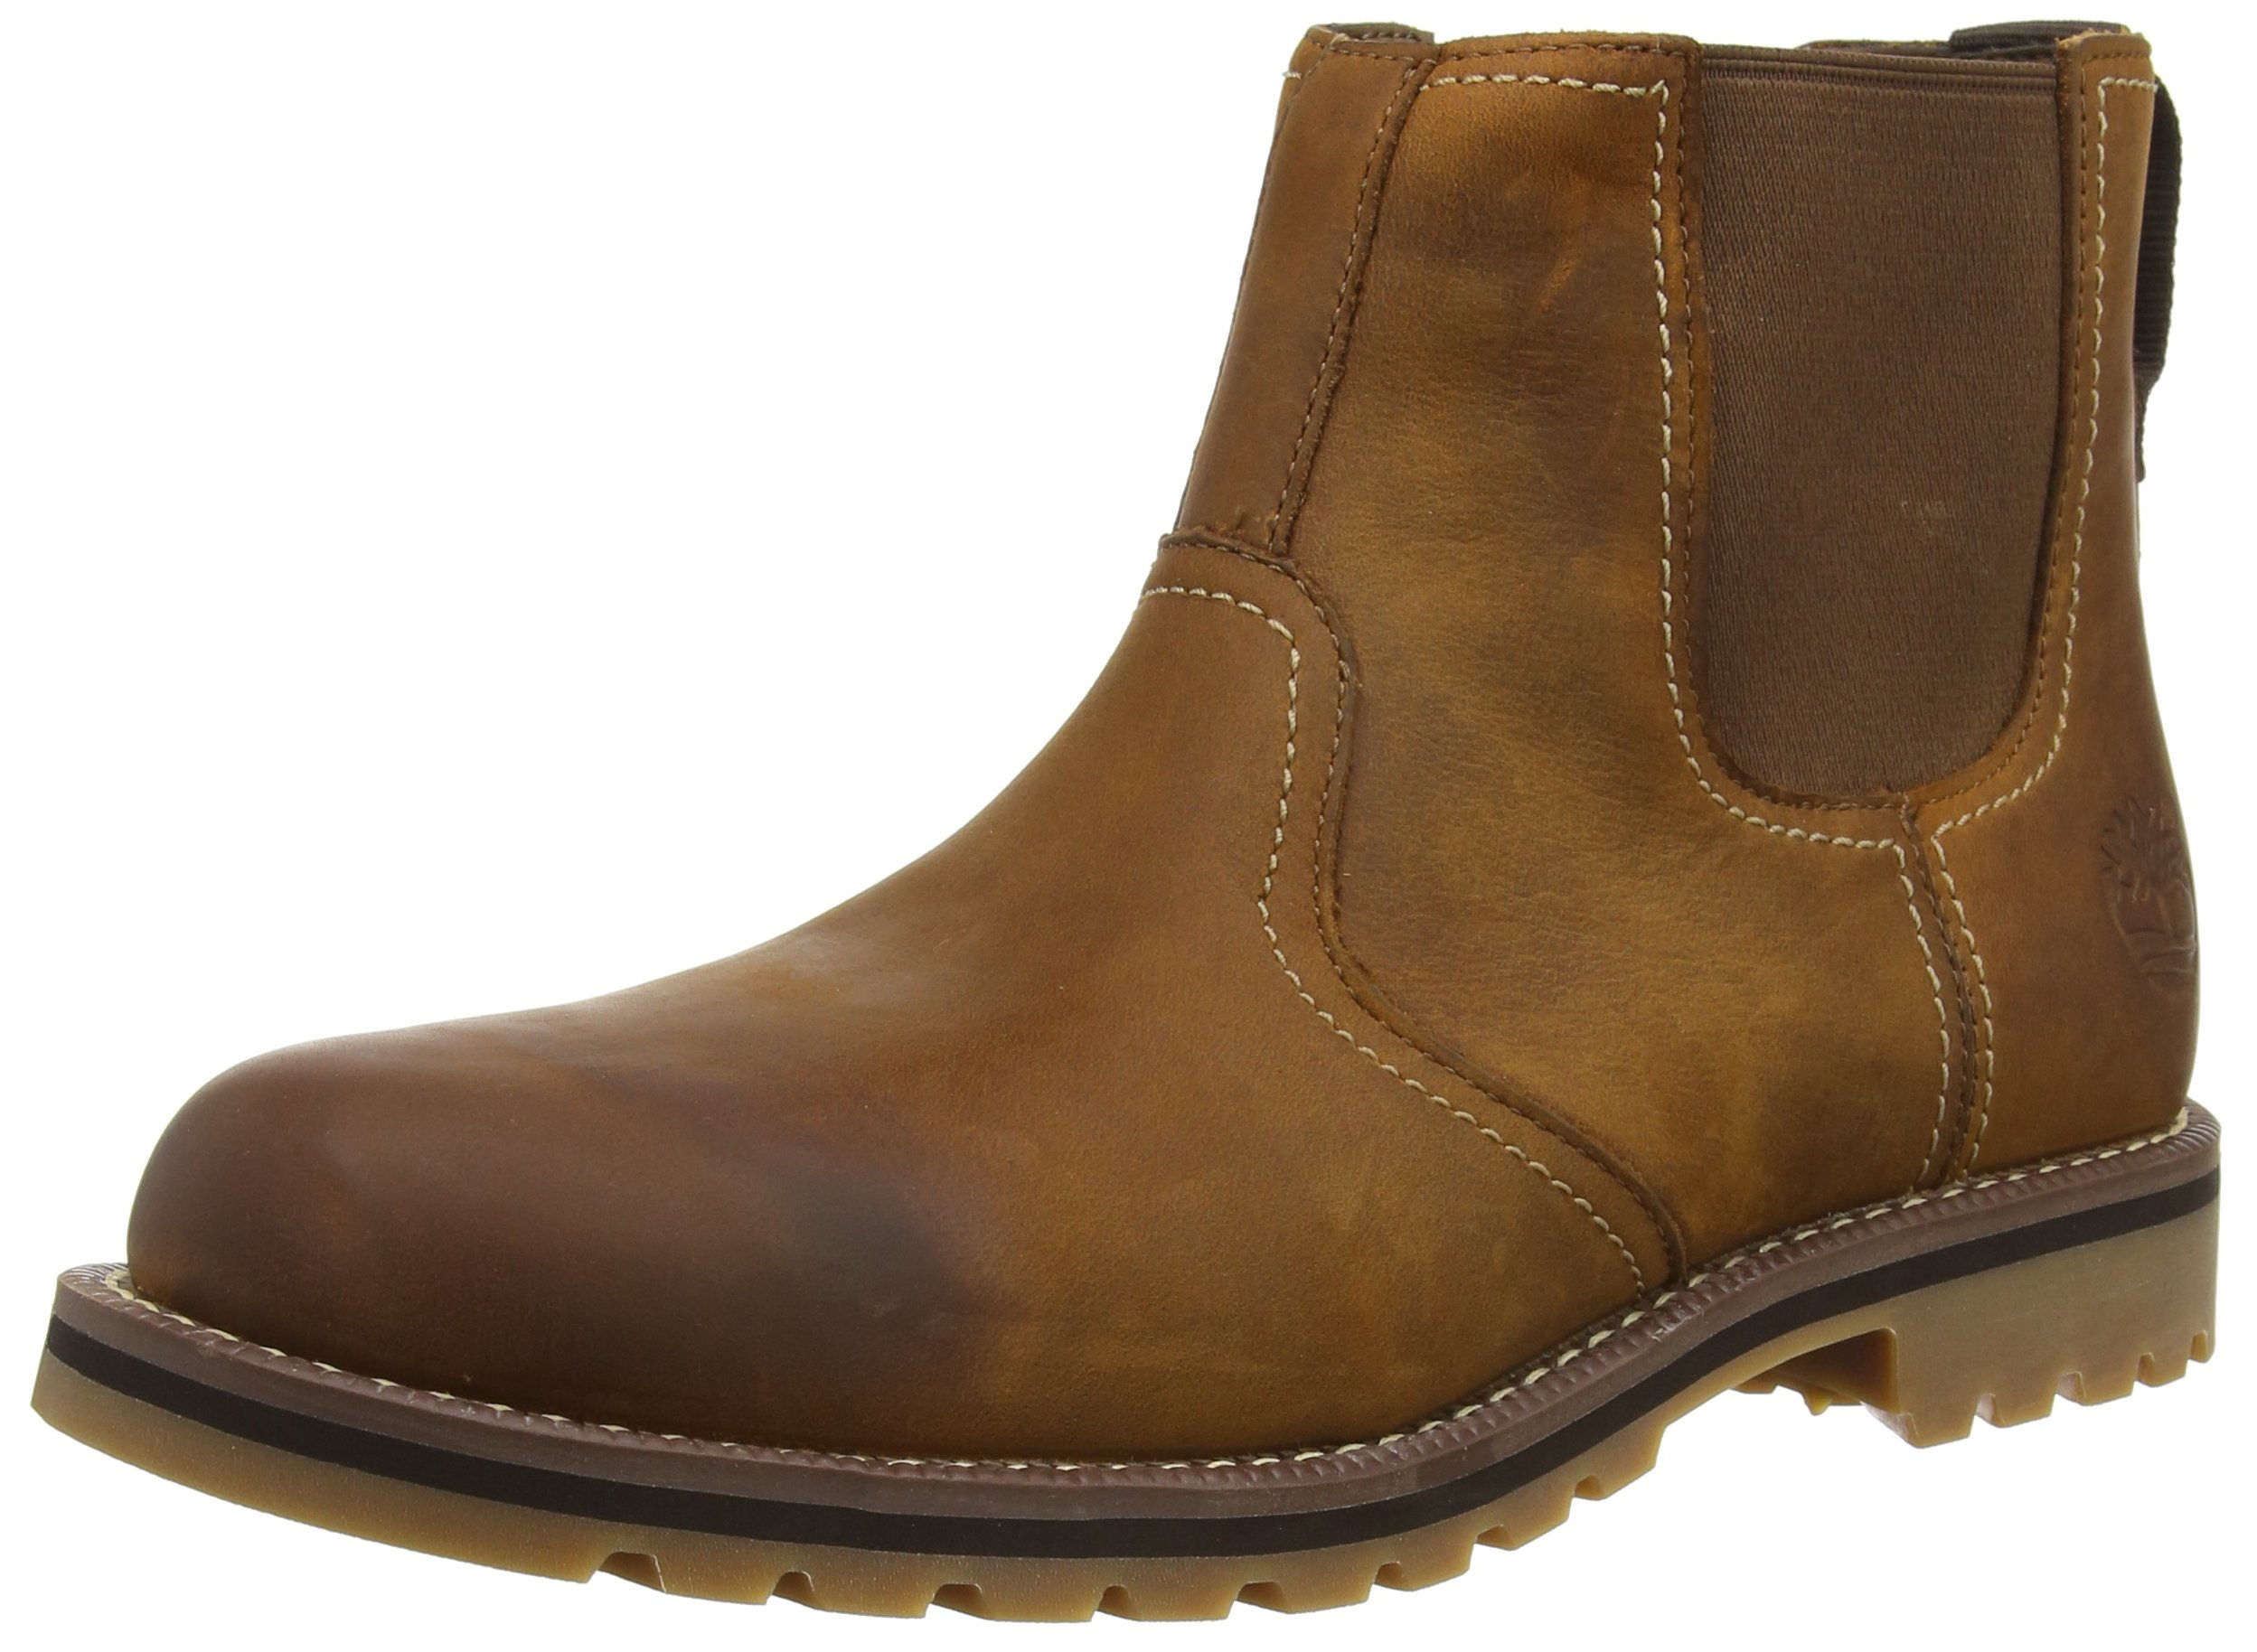 Timberland Mens Larchmont Chelsea Brown Leather Boots 9.5 US